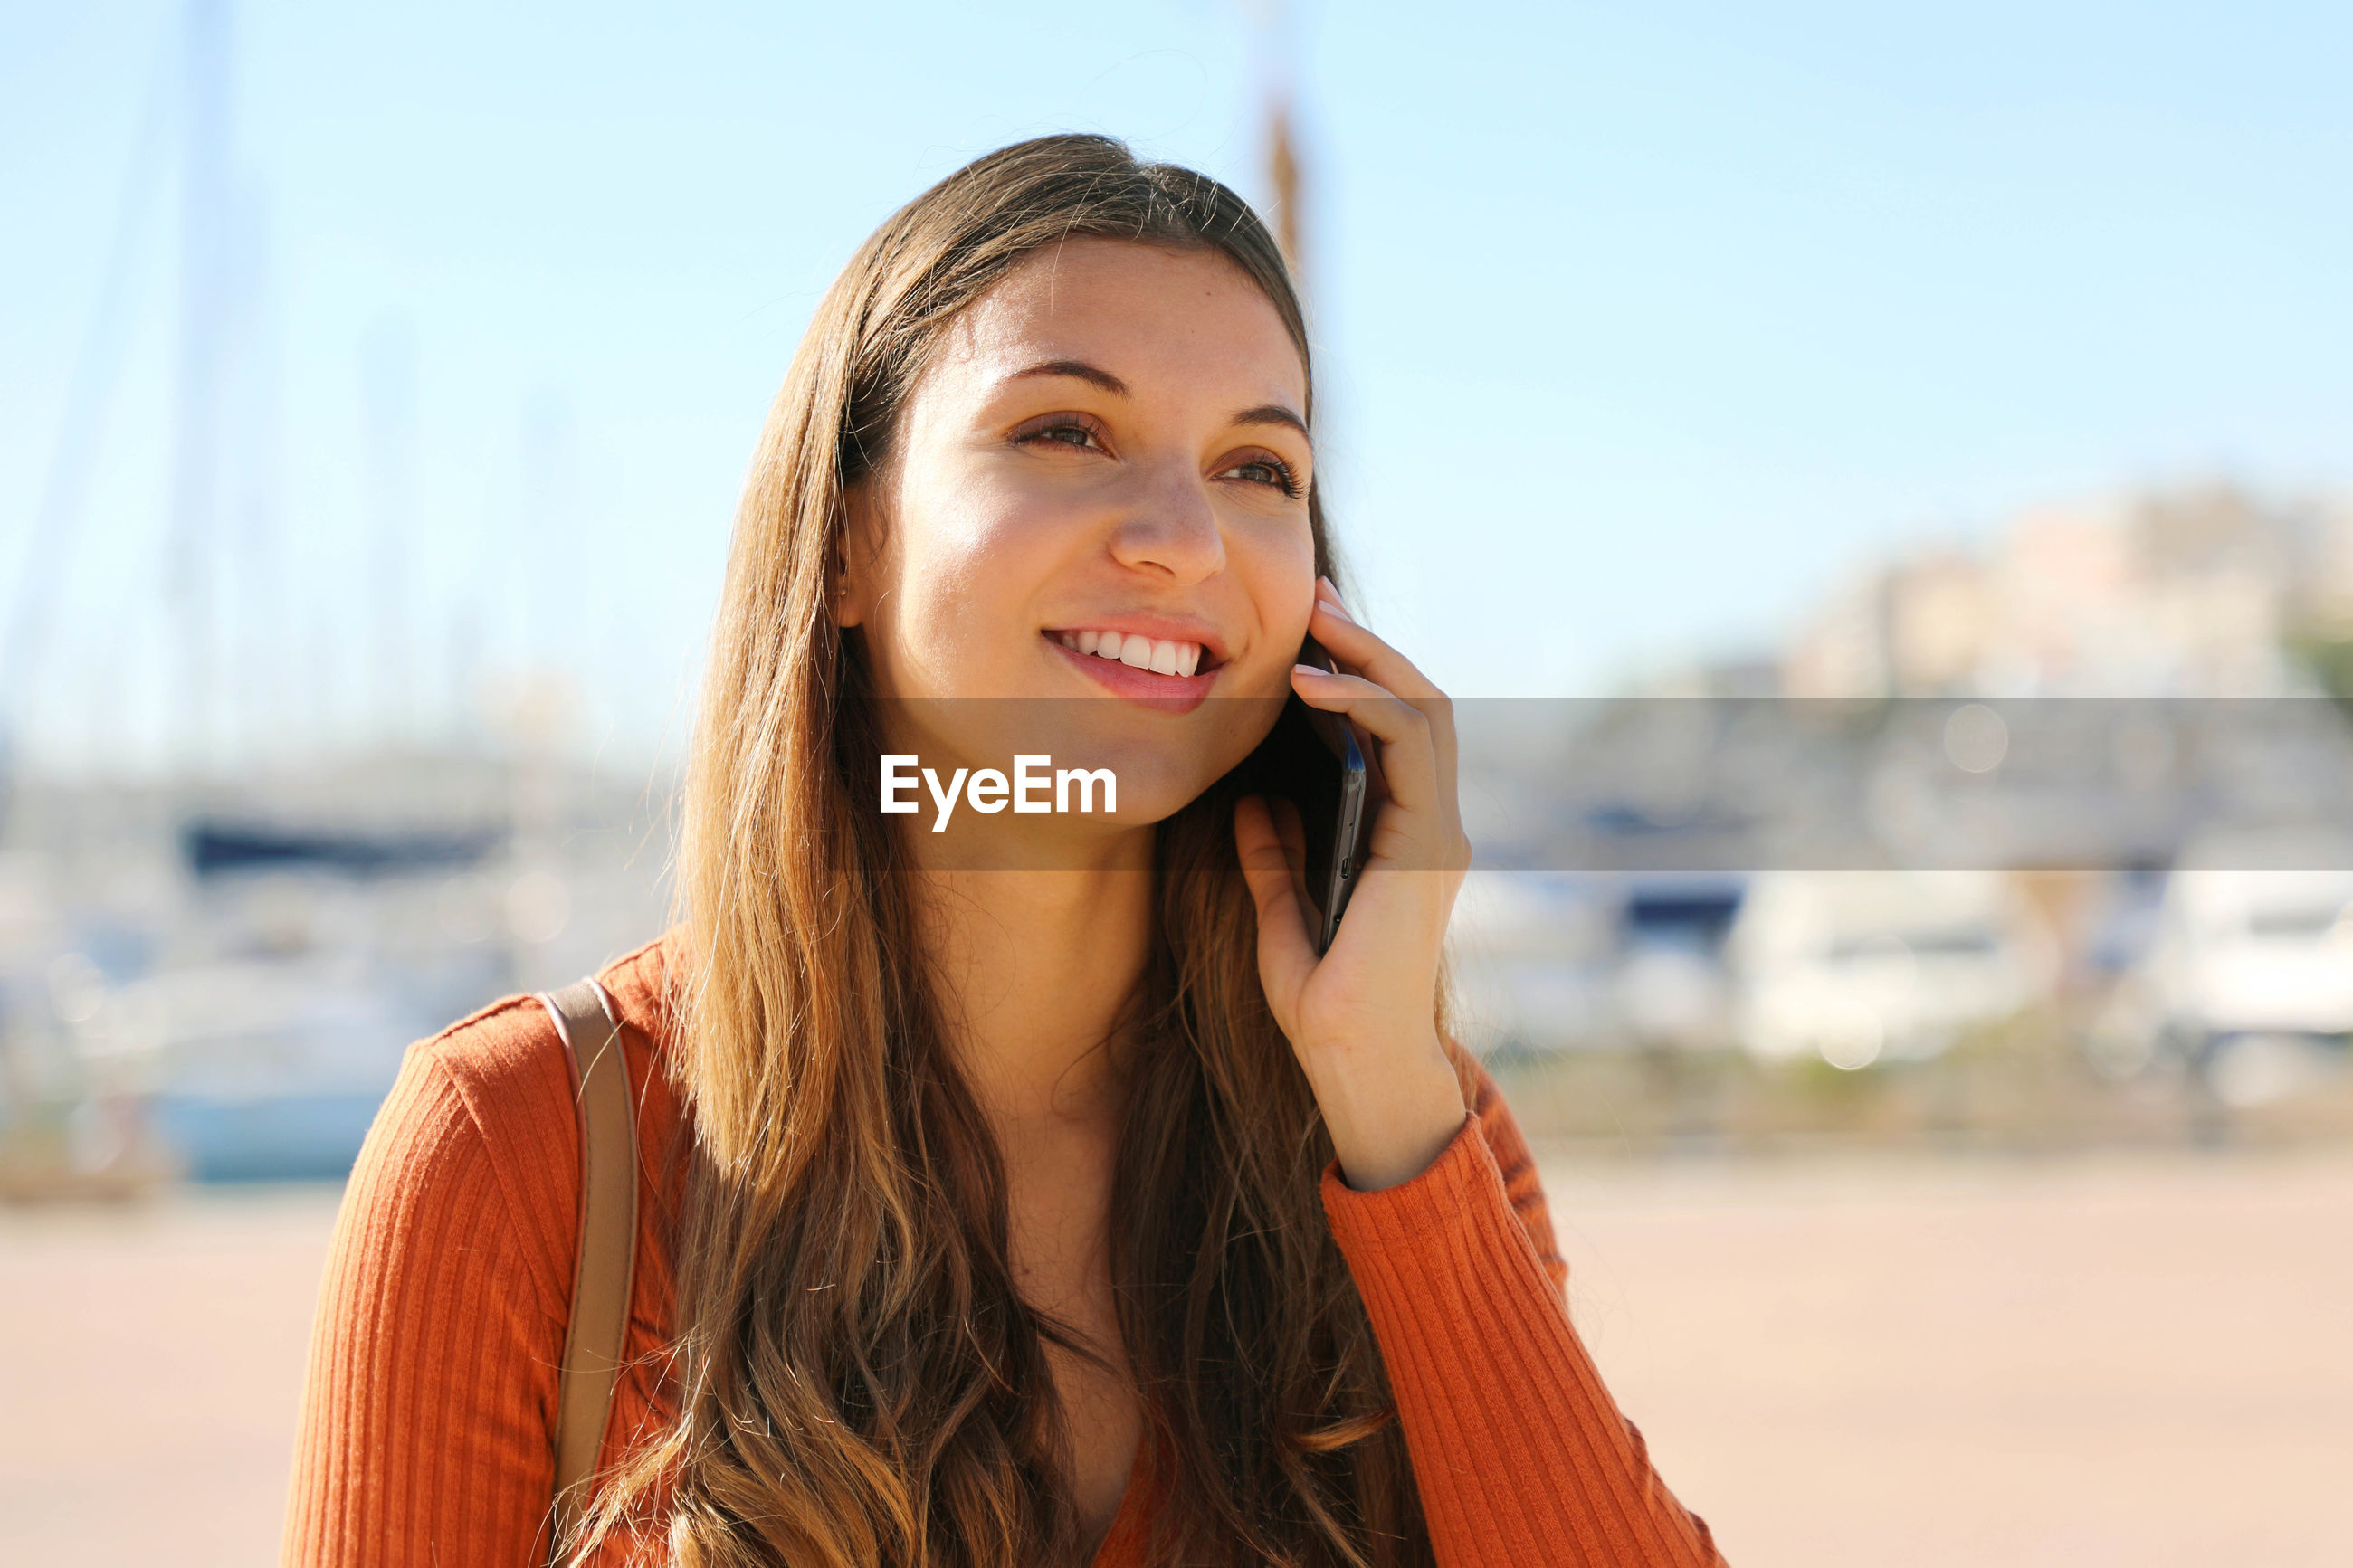 Close-up of thoughtful young woman talking on phone while standing in city